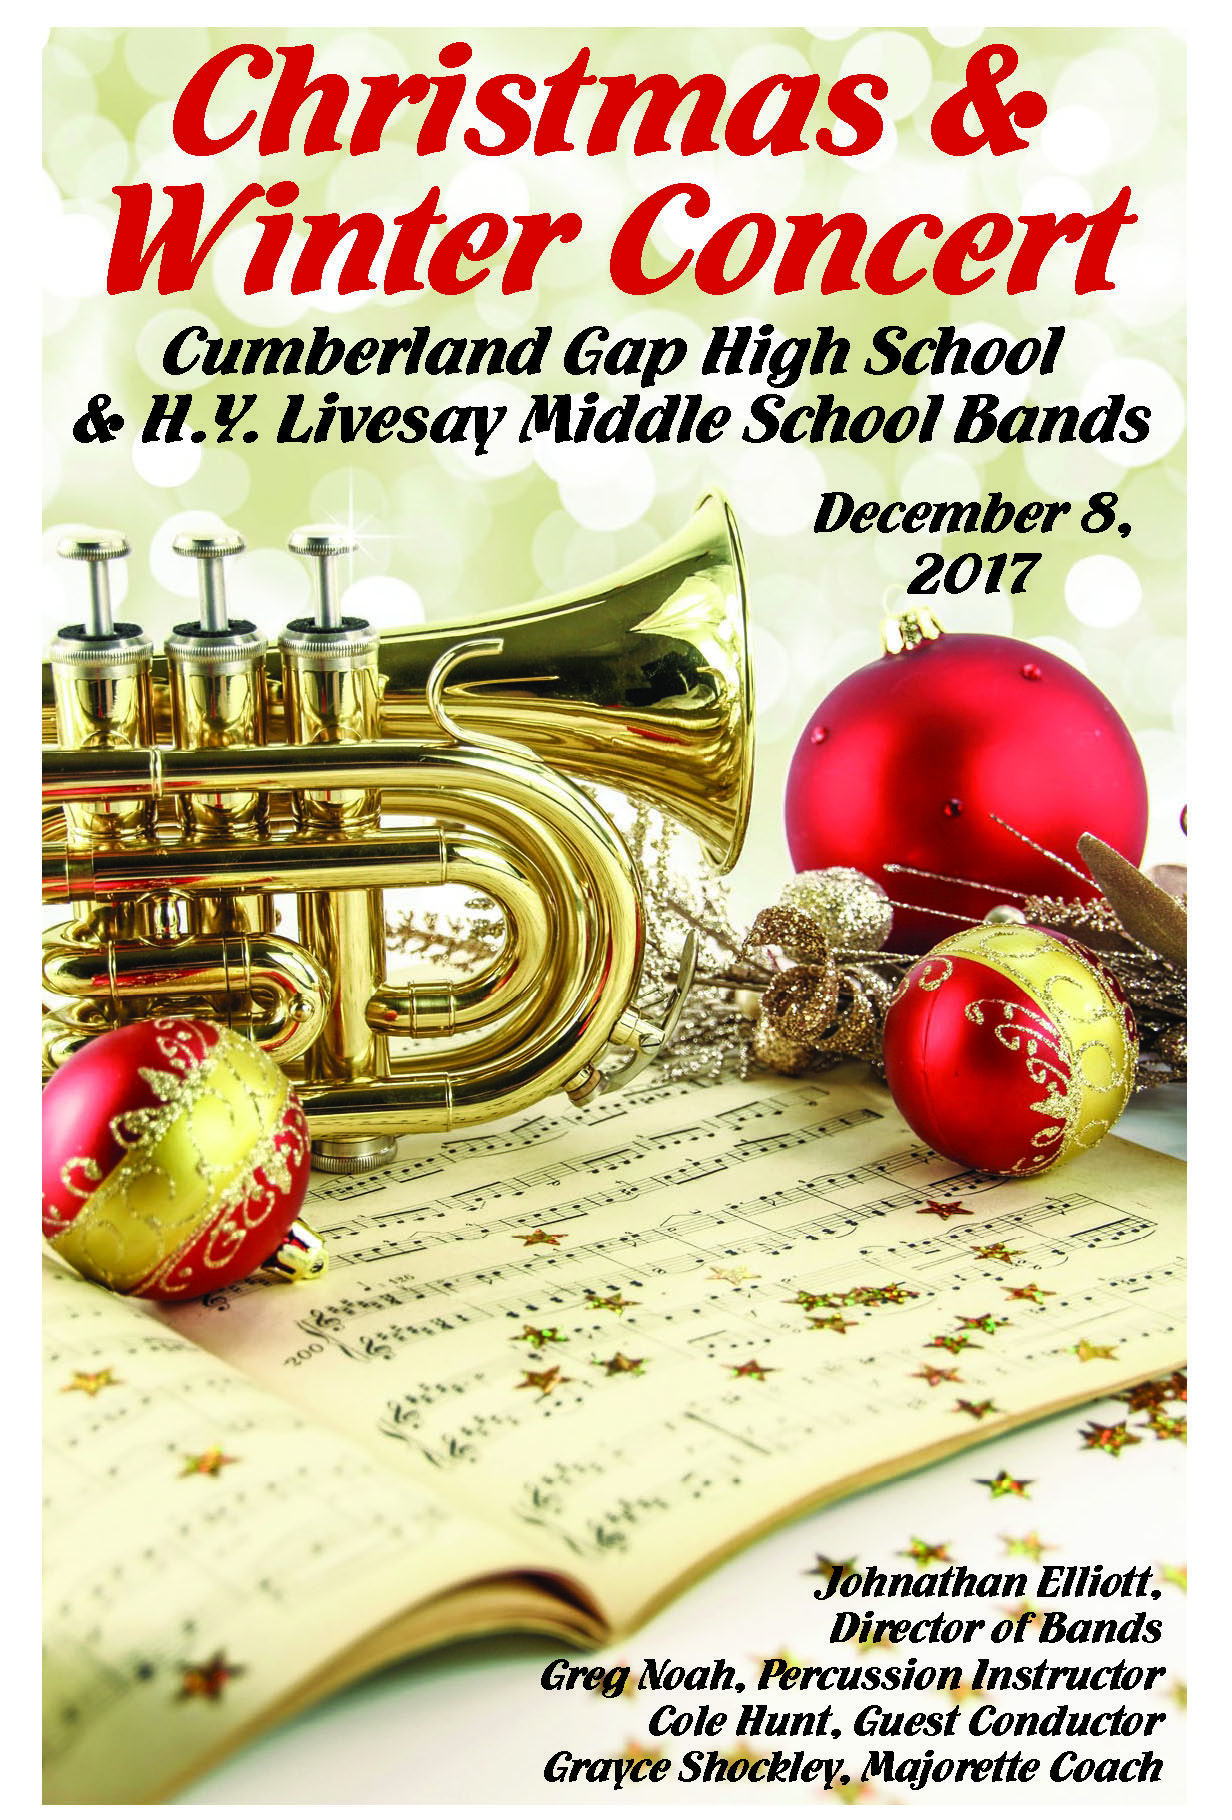 Cumberland Gap High School & H.Y. Livesay Middle School (Christmas Band Concert Poster